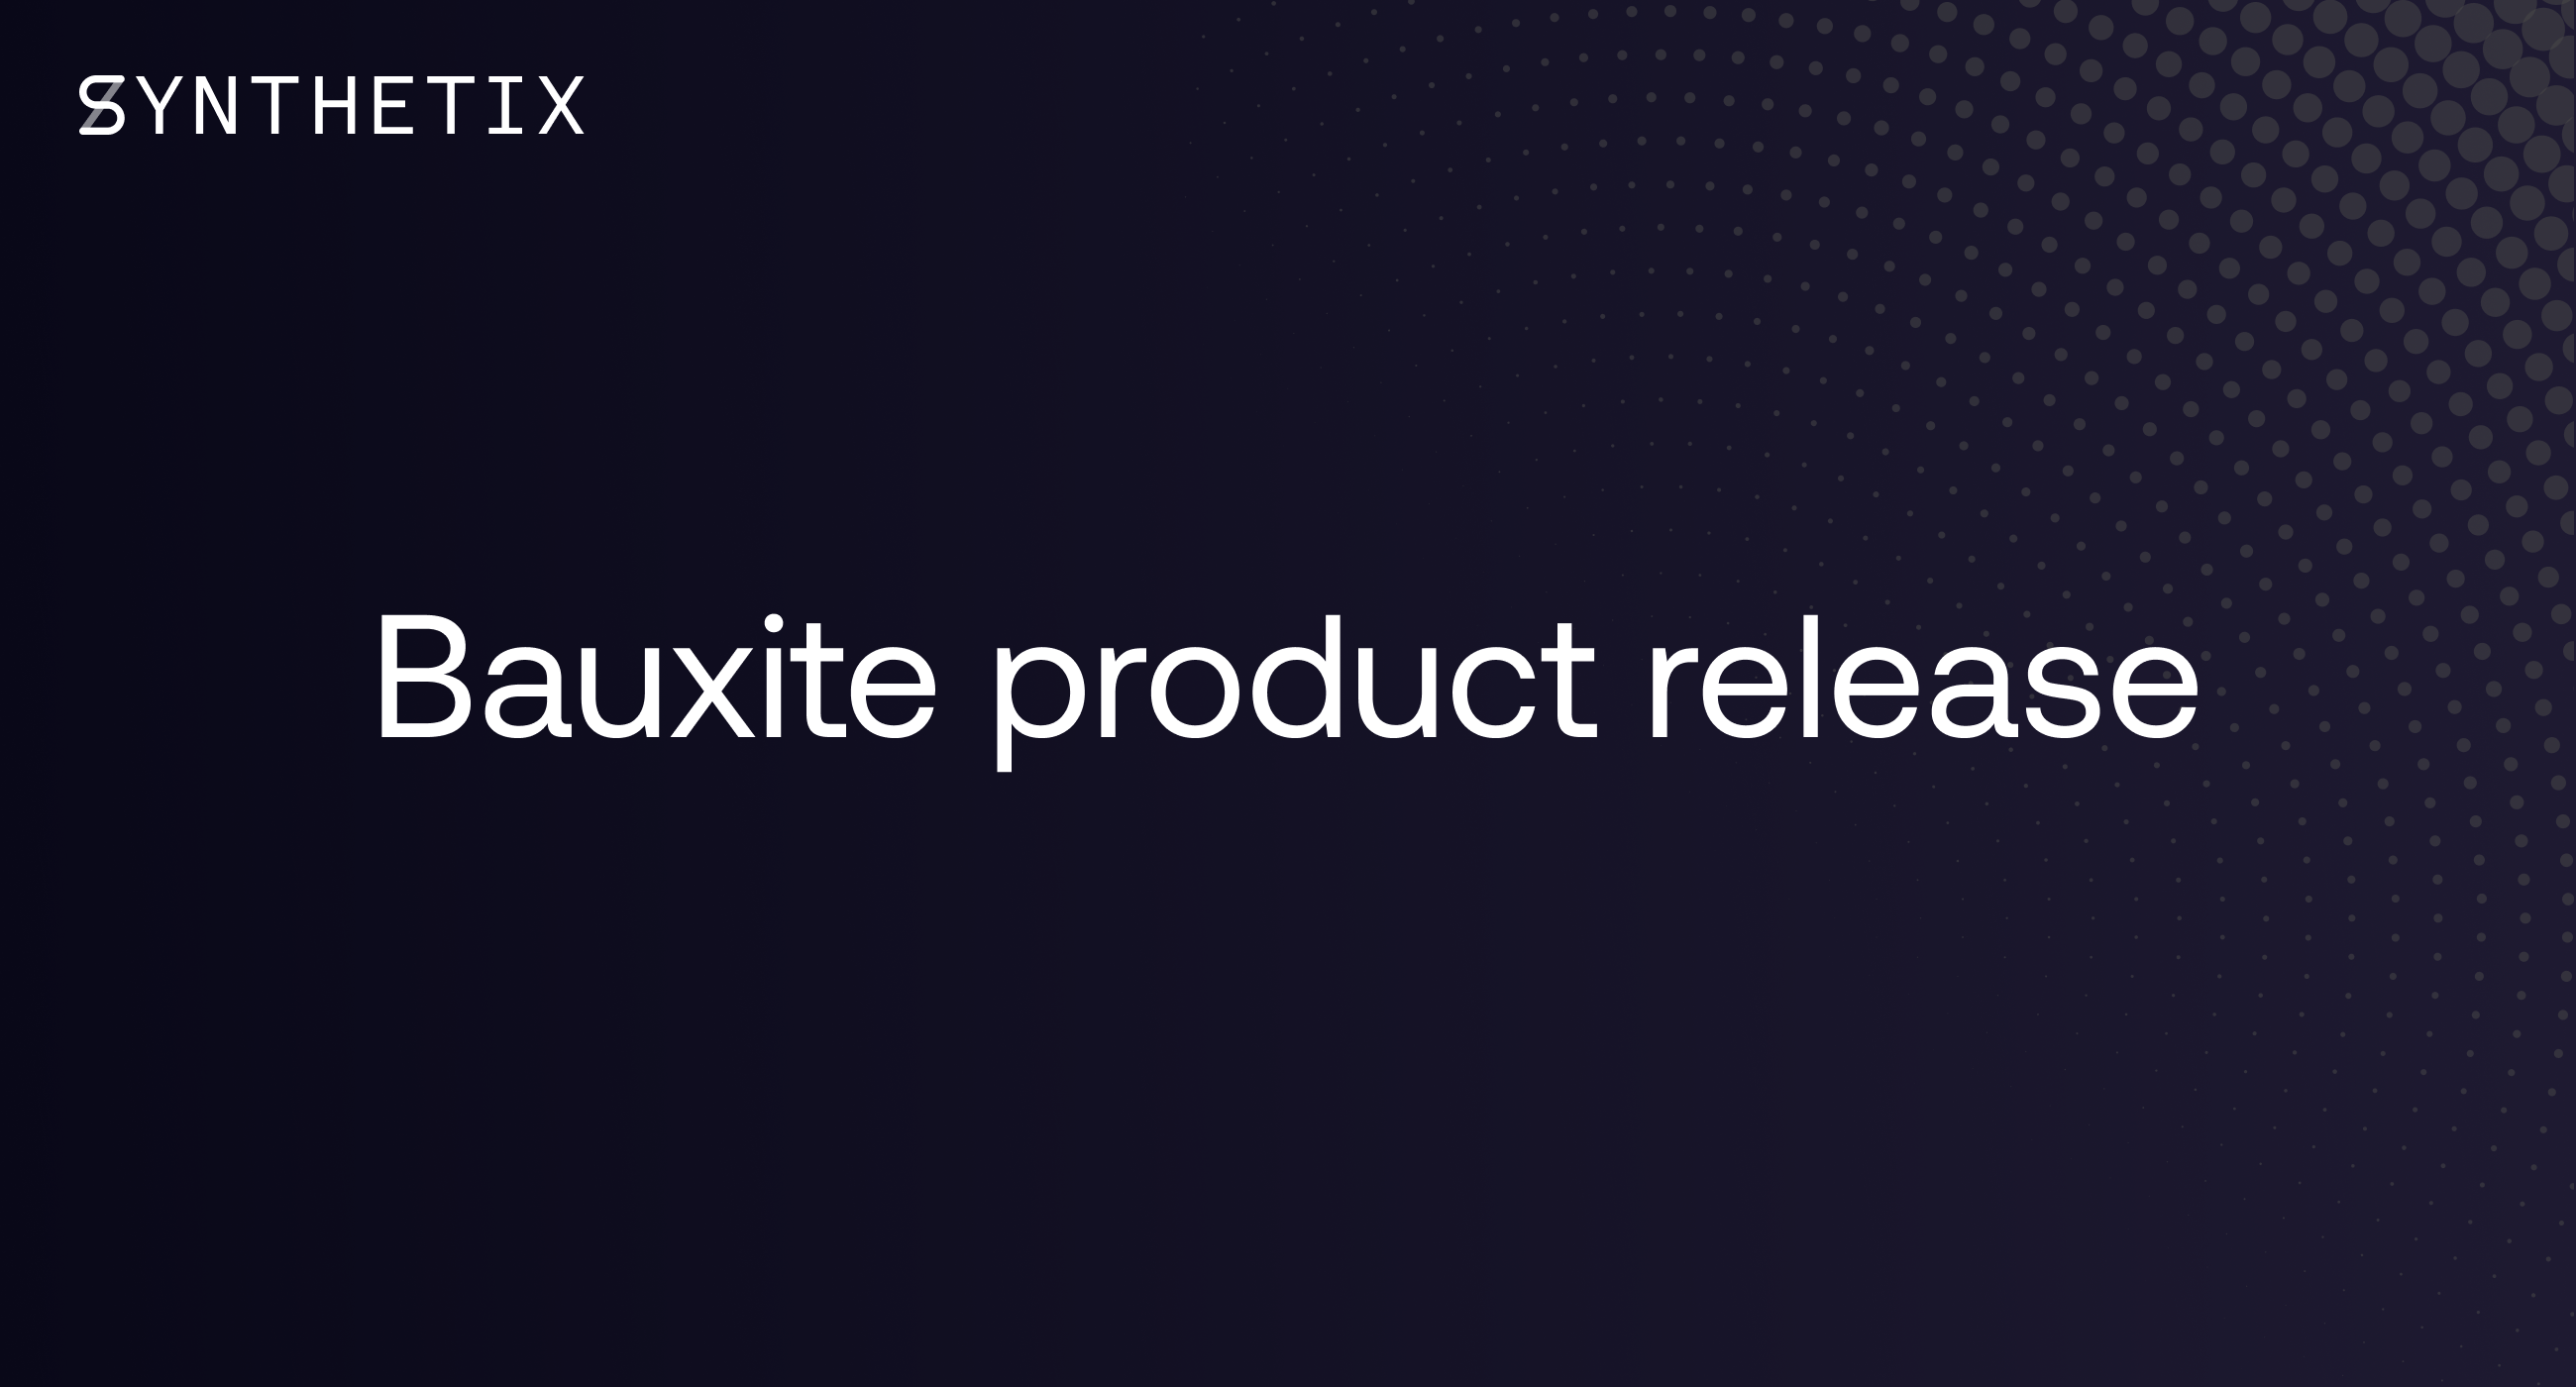 Bauxite Product Release